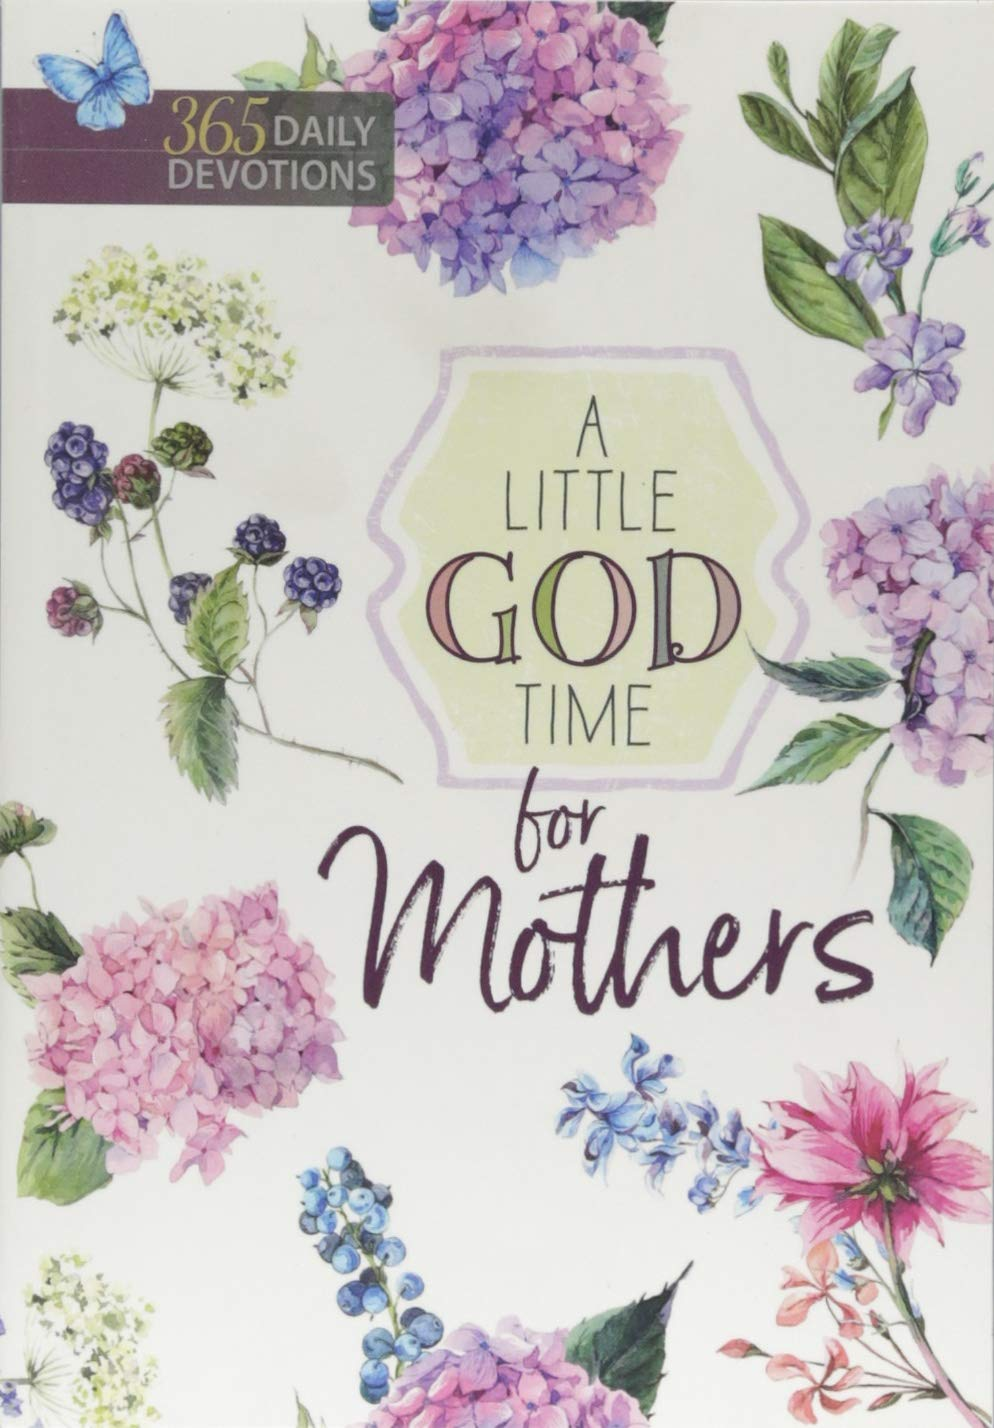 Little God Time Mothers Devotions product image